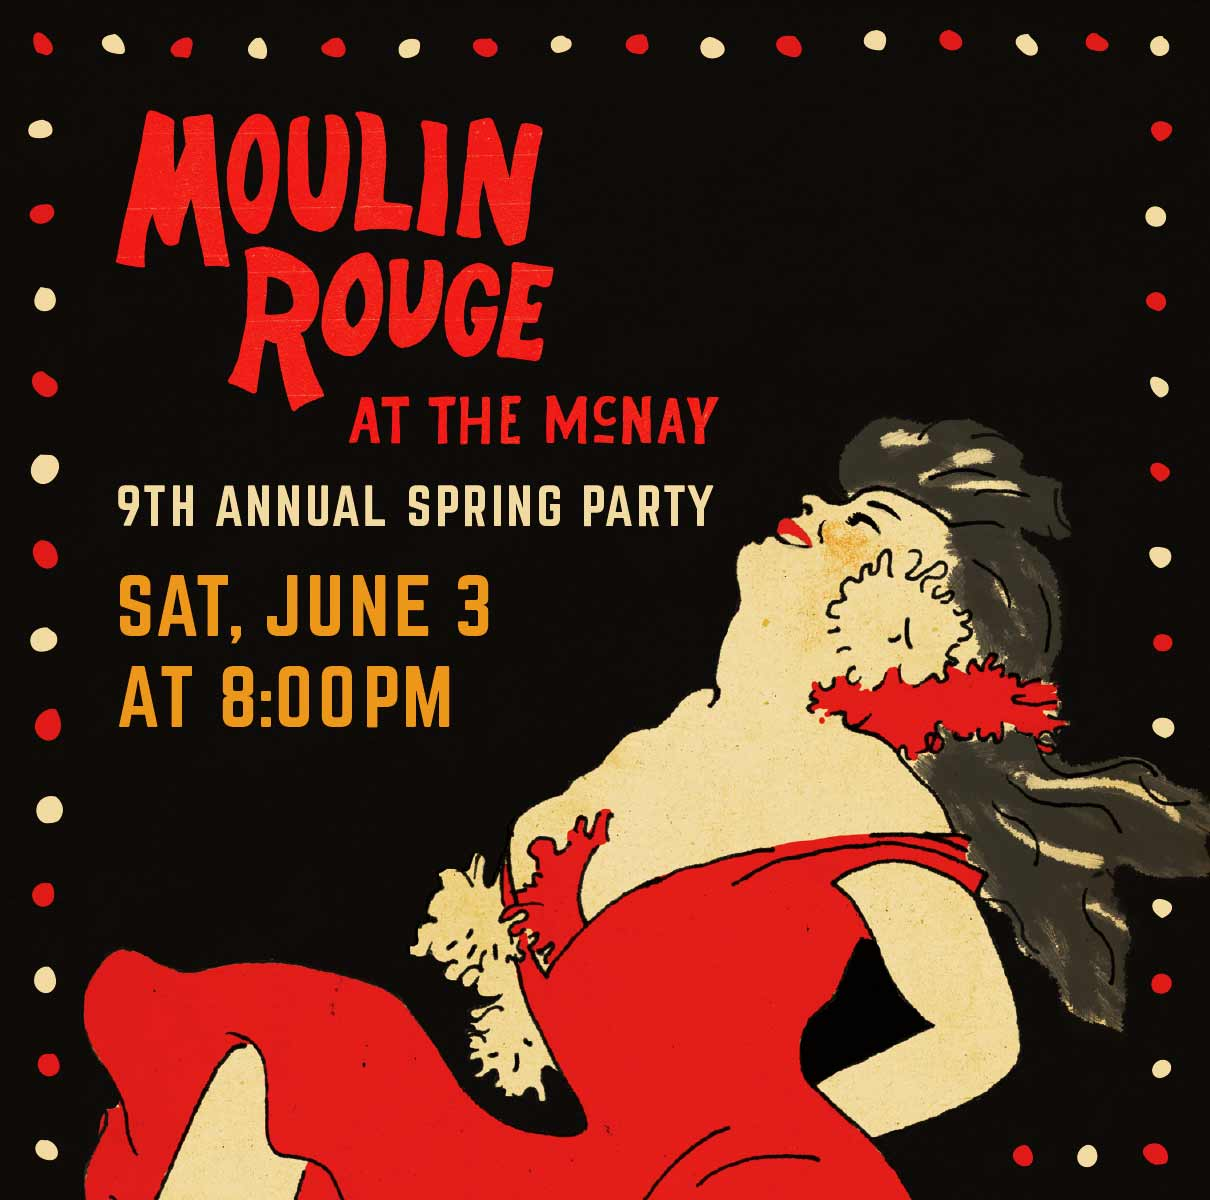 Moulin Rouge announcement image